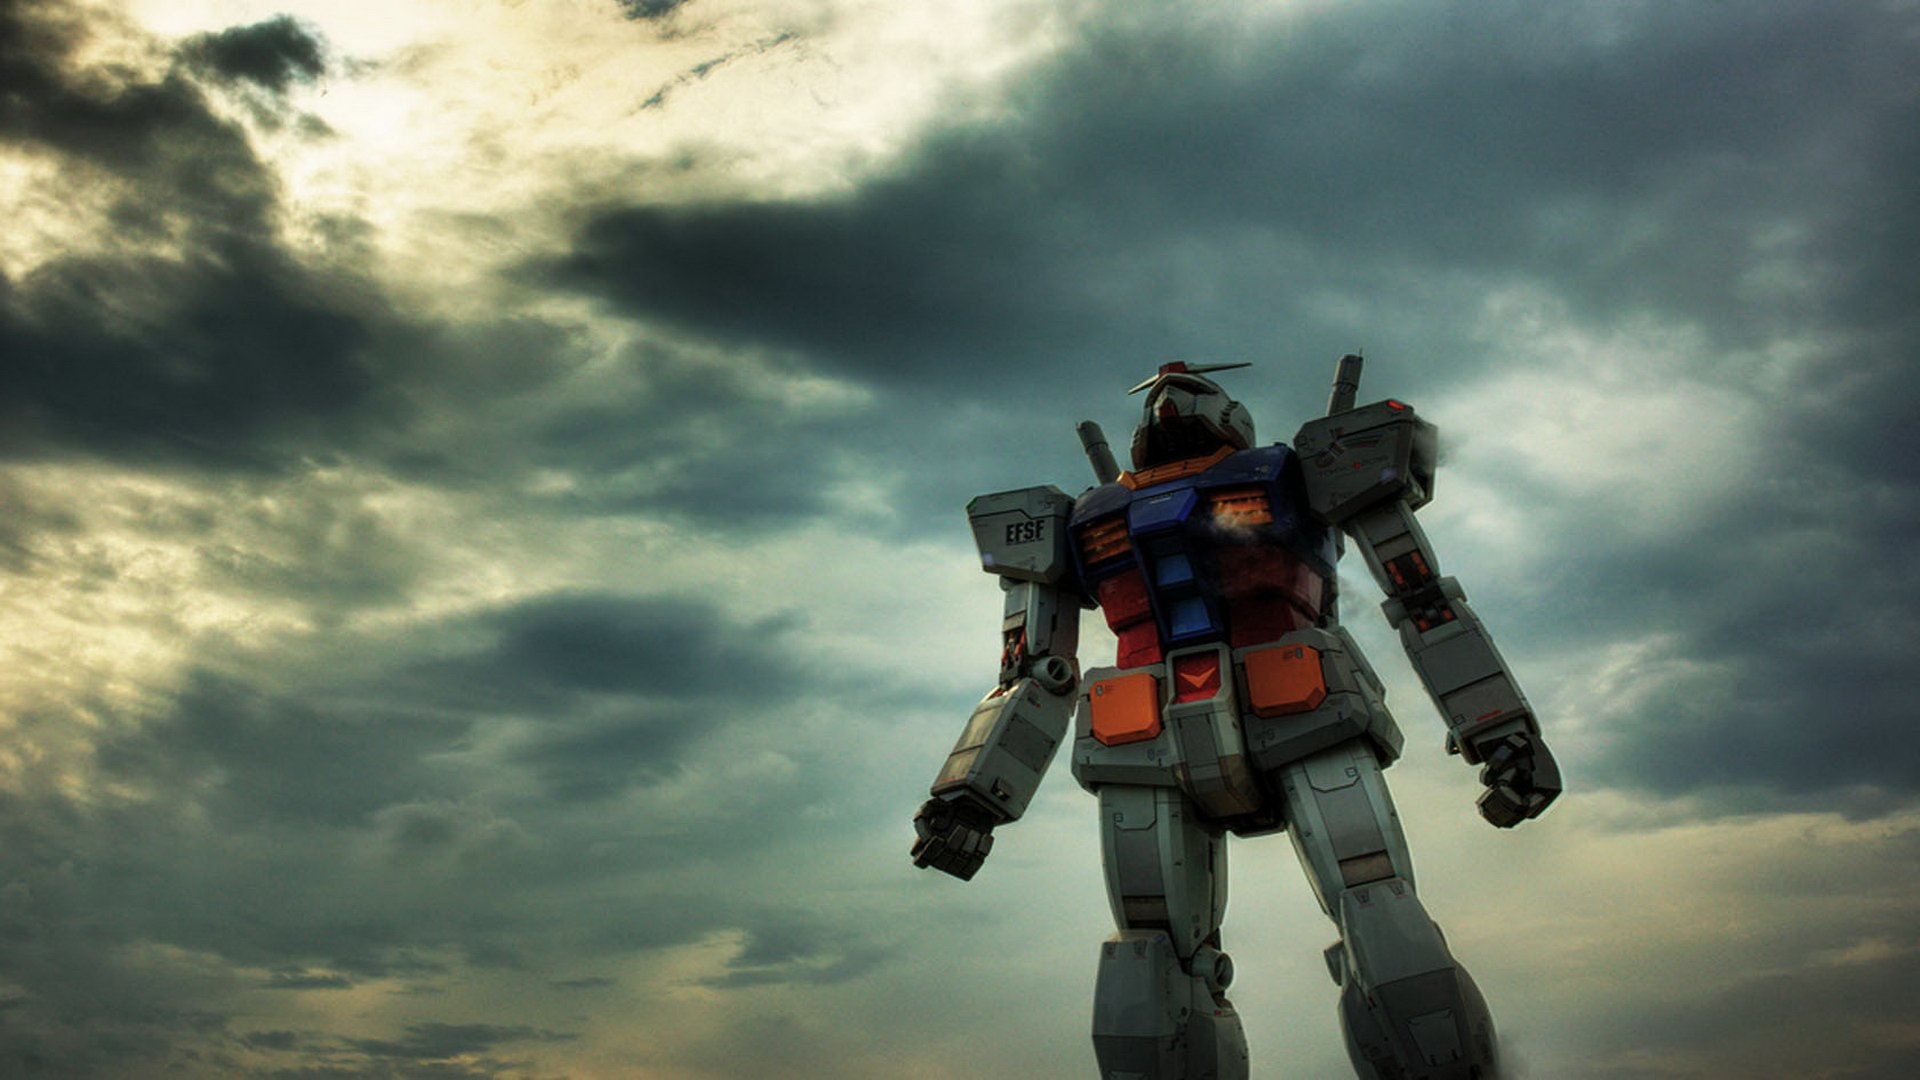 Wallpapers HD Desktop Wallpapers Gundam Wallpapers 41jpg 1920 x 1920x1080